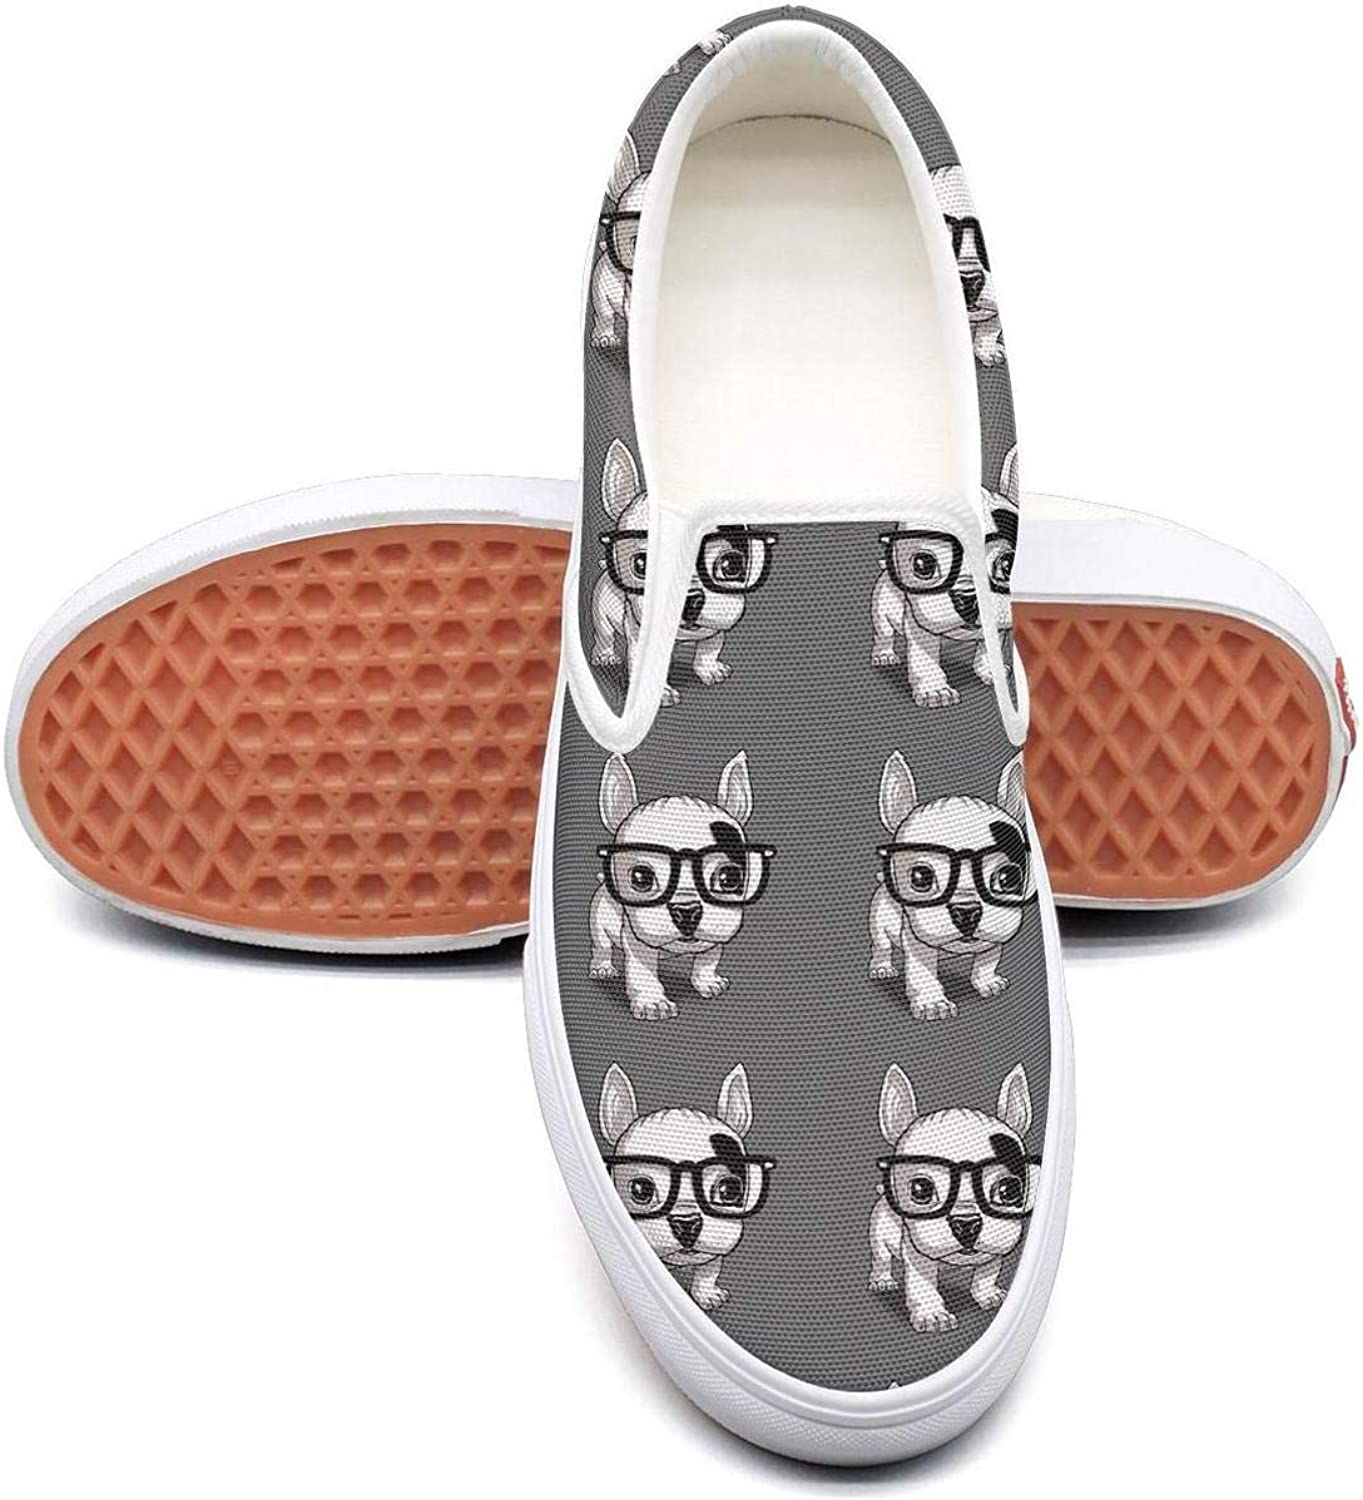 Refyds-es French Bulldog Wear Sunglasses Cool Womens Fashion Slip on Low Top Lightweight Canvas Cloth shoes